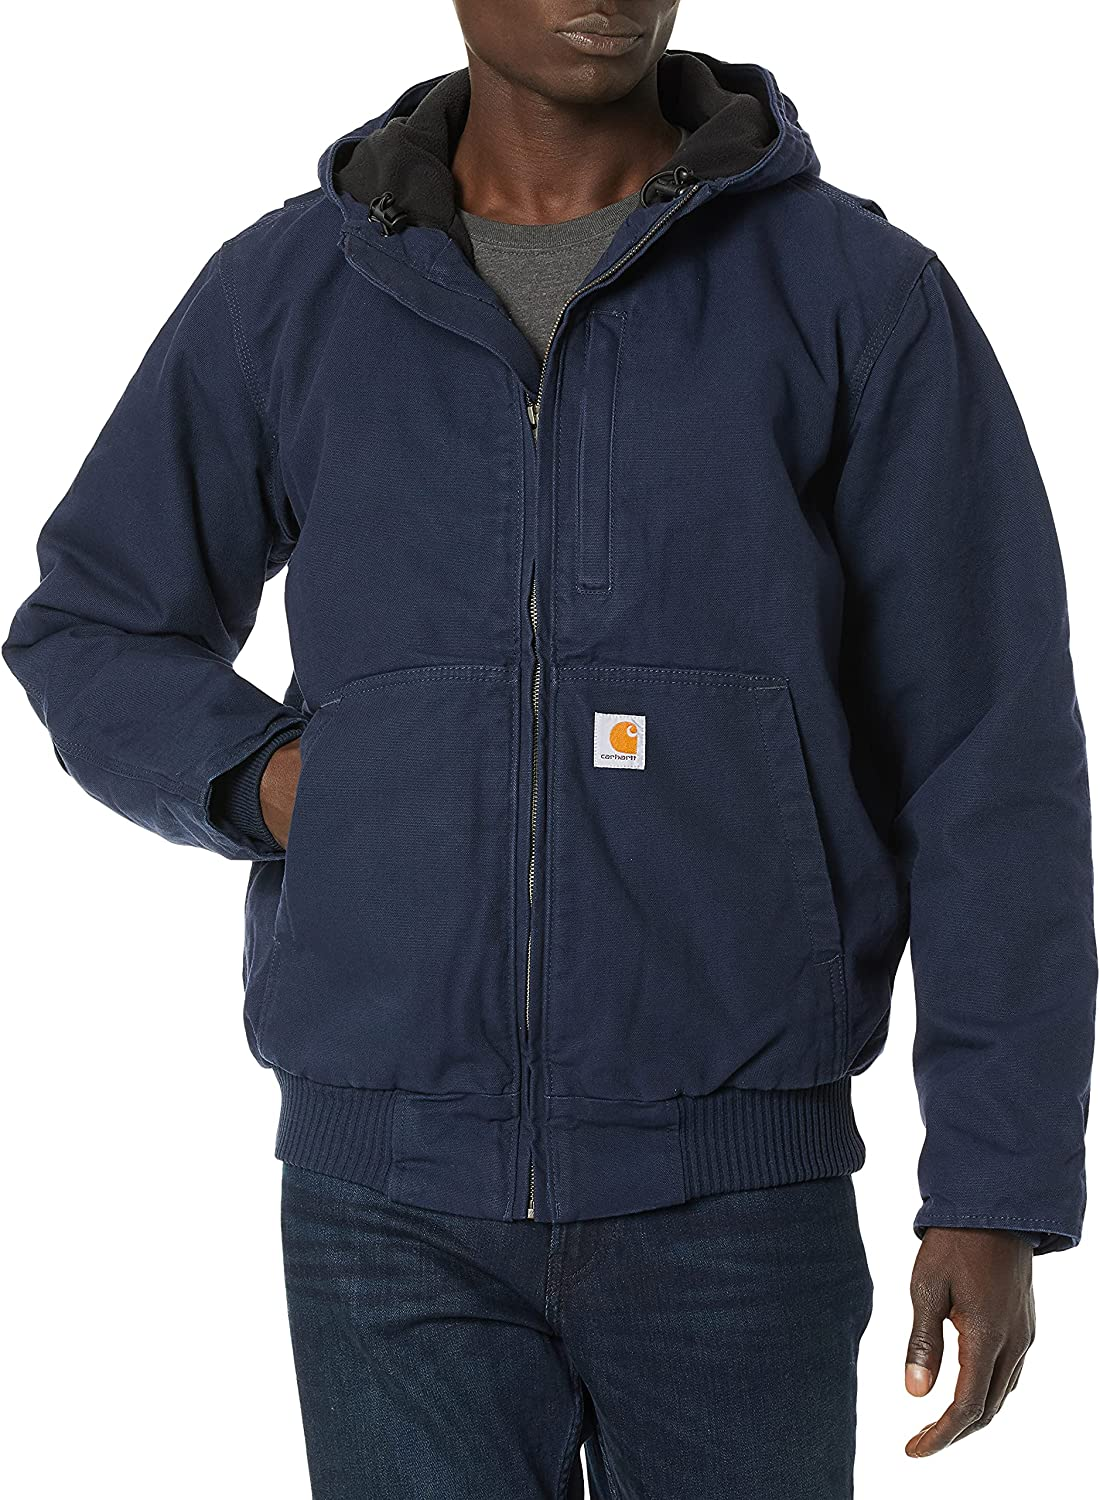 free shipping Carhartt Men's Full Swing Armstrong 2021 new Jac Active and Regular Big